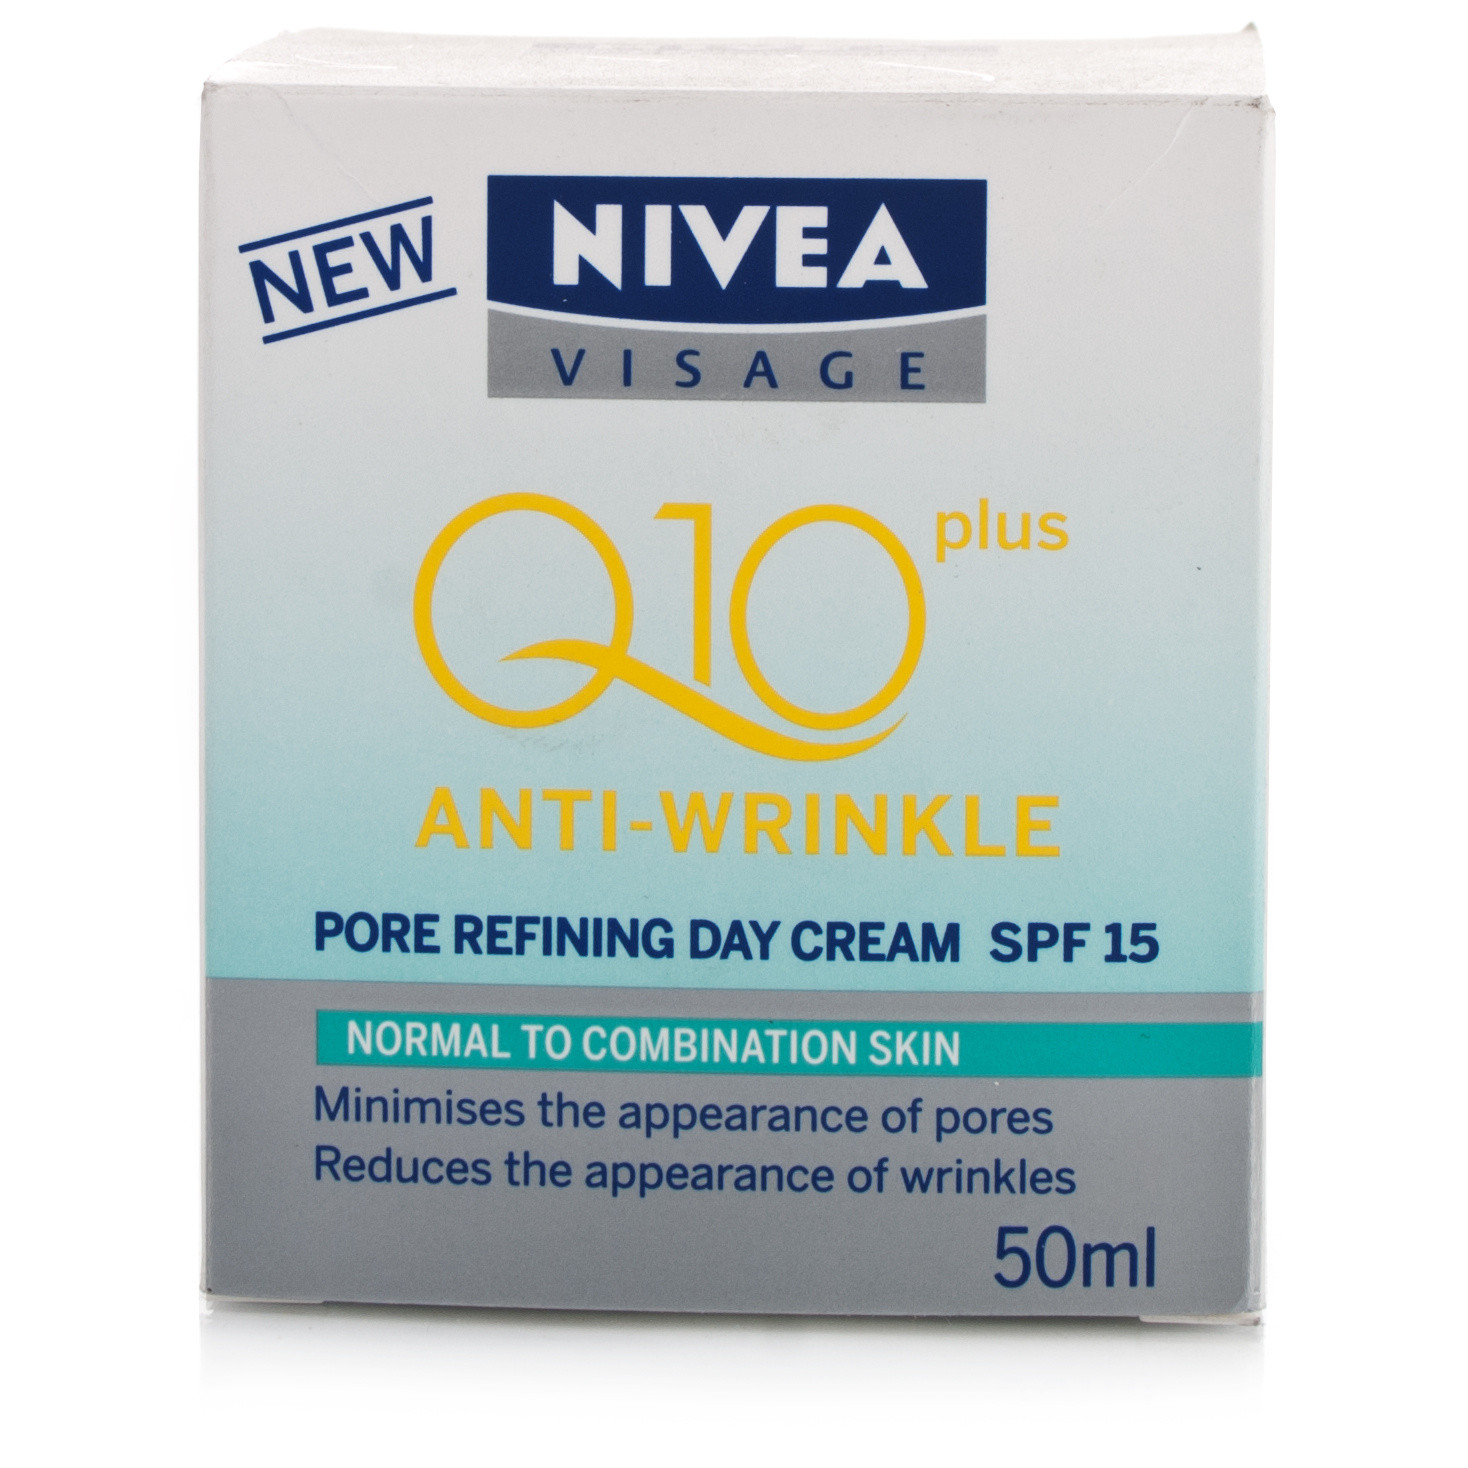 Nivea Visage Q10 Plus Anti-Wrinkle Pore Refining Day Cream SPF15